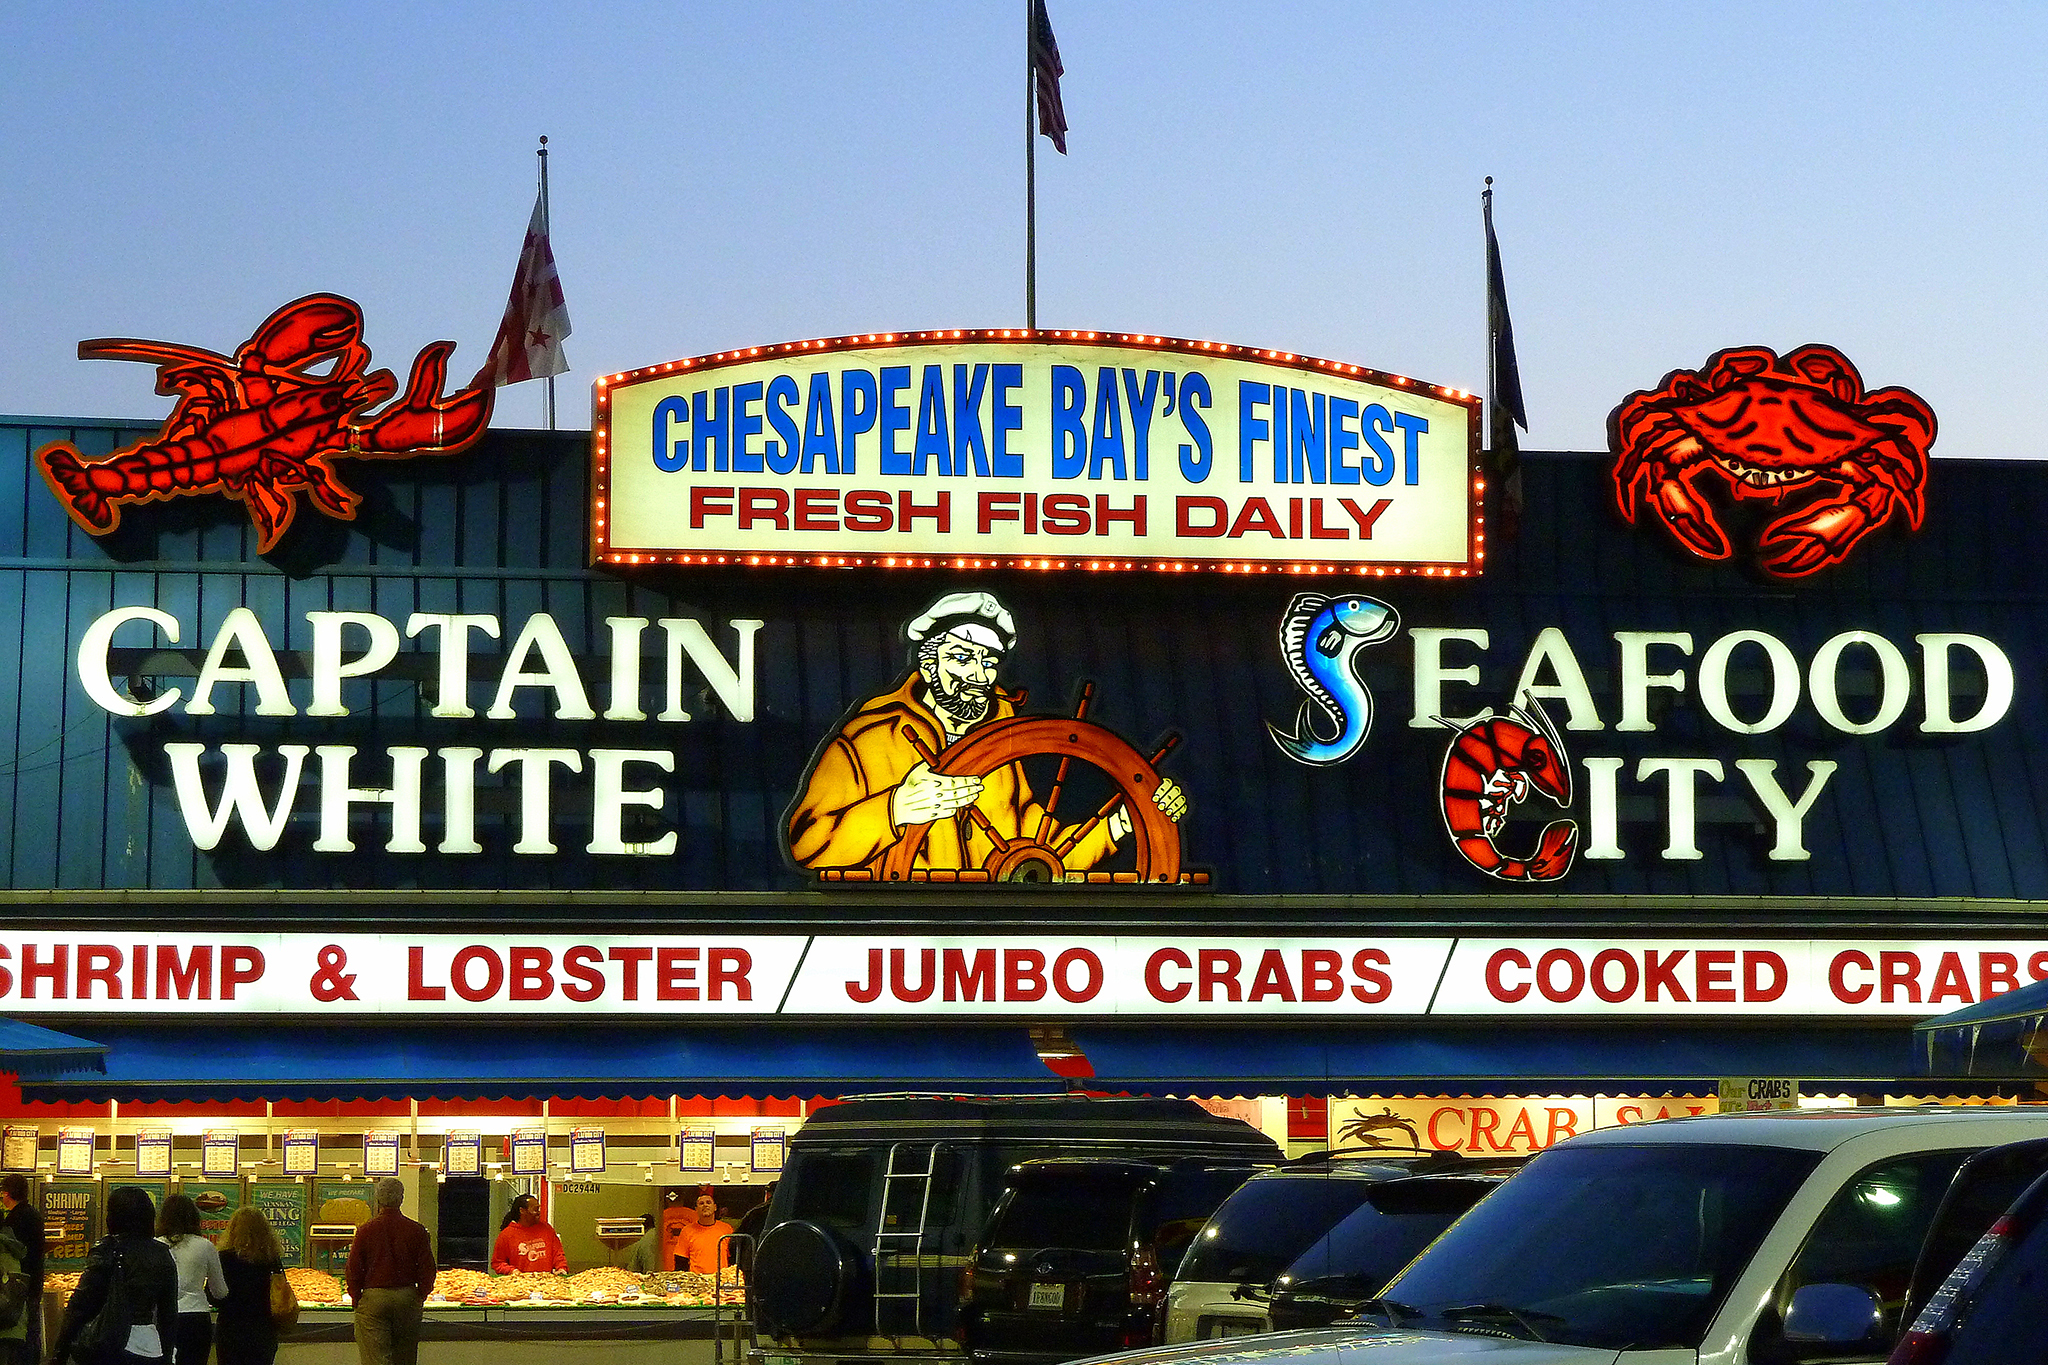 Captain White Seafood City